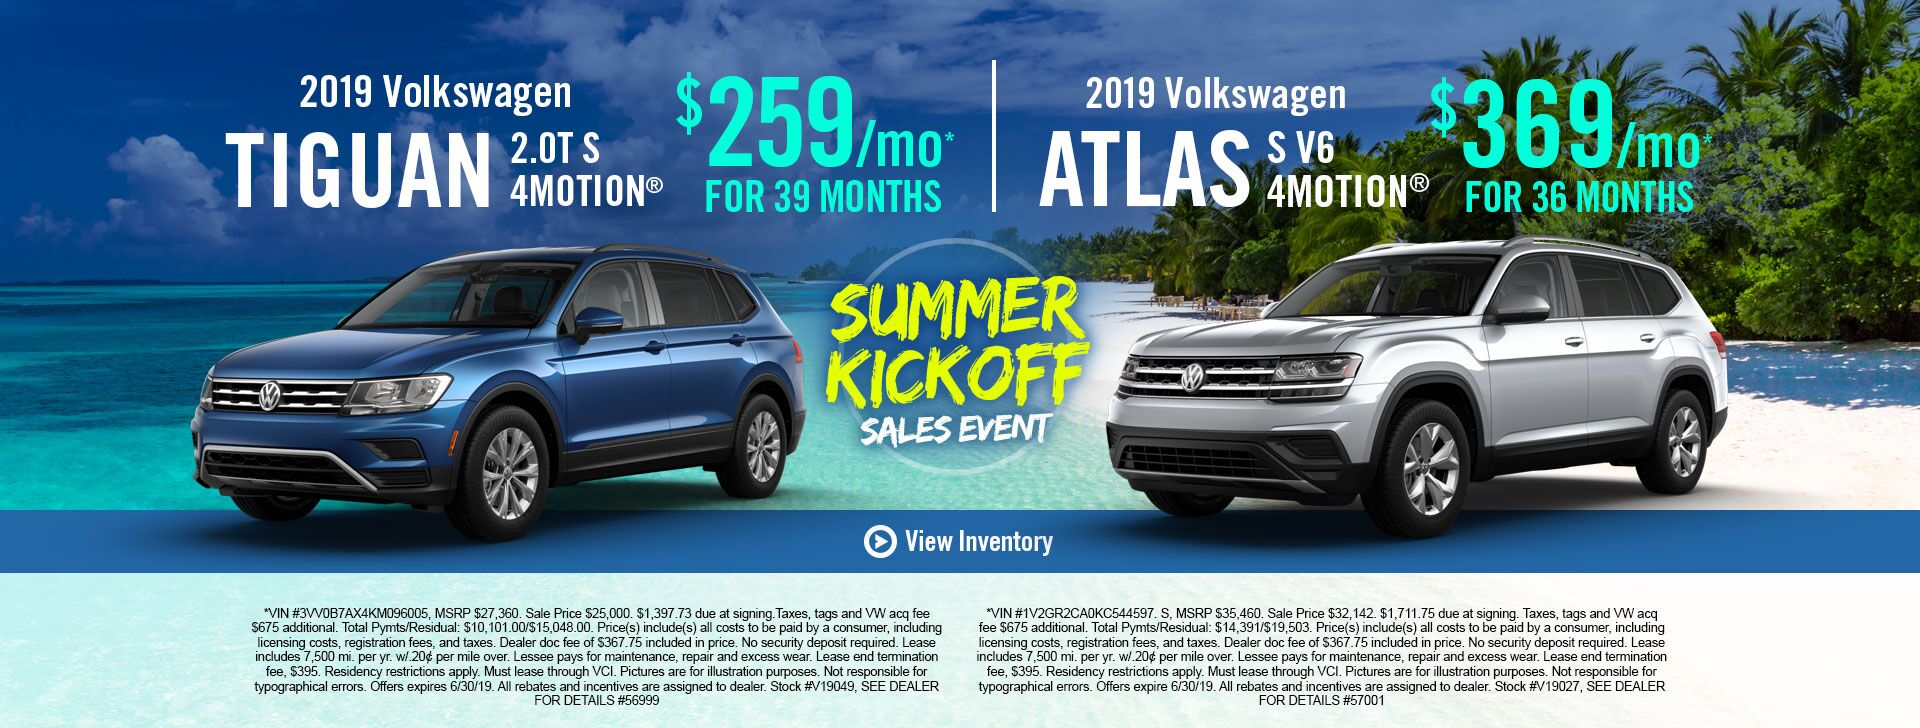 2019 Tiguan and Atlas